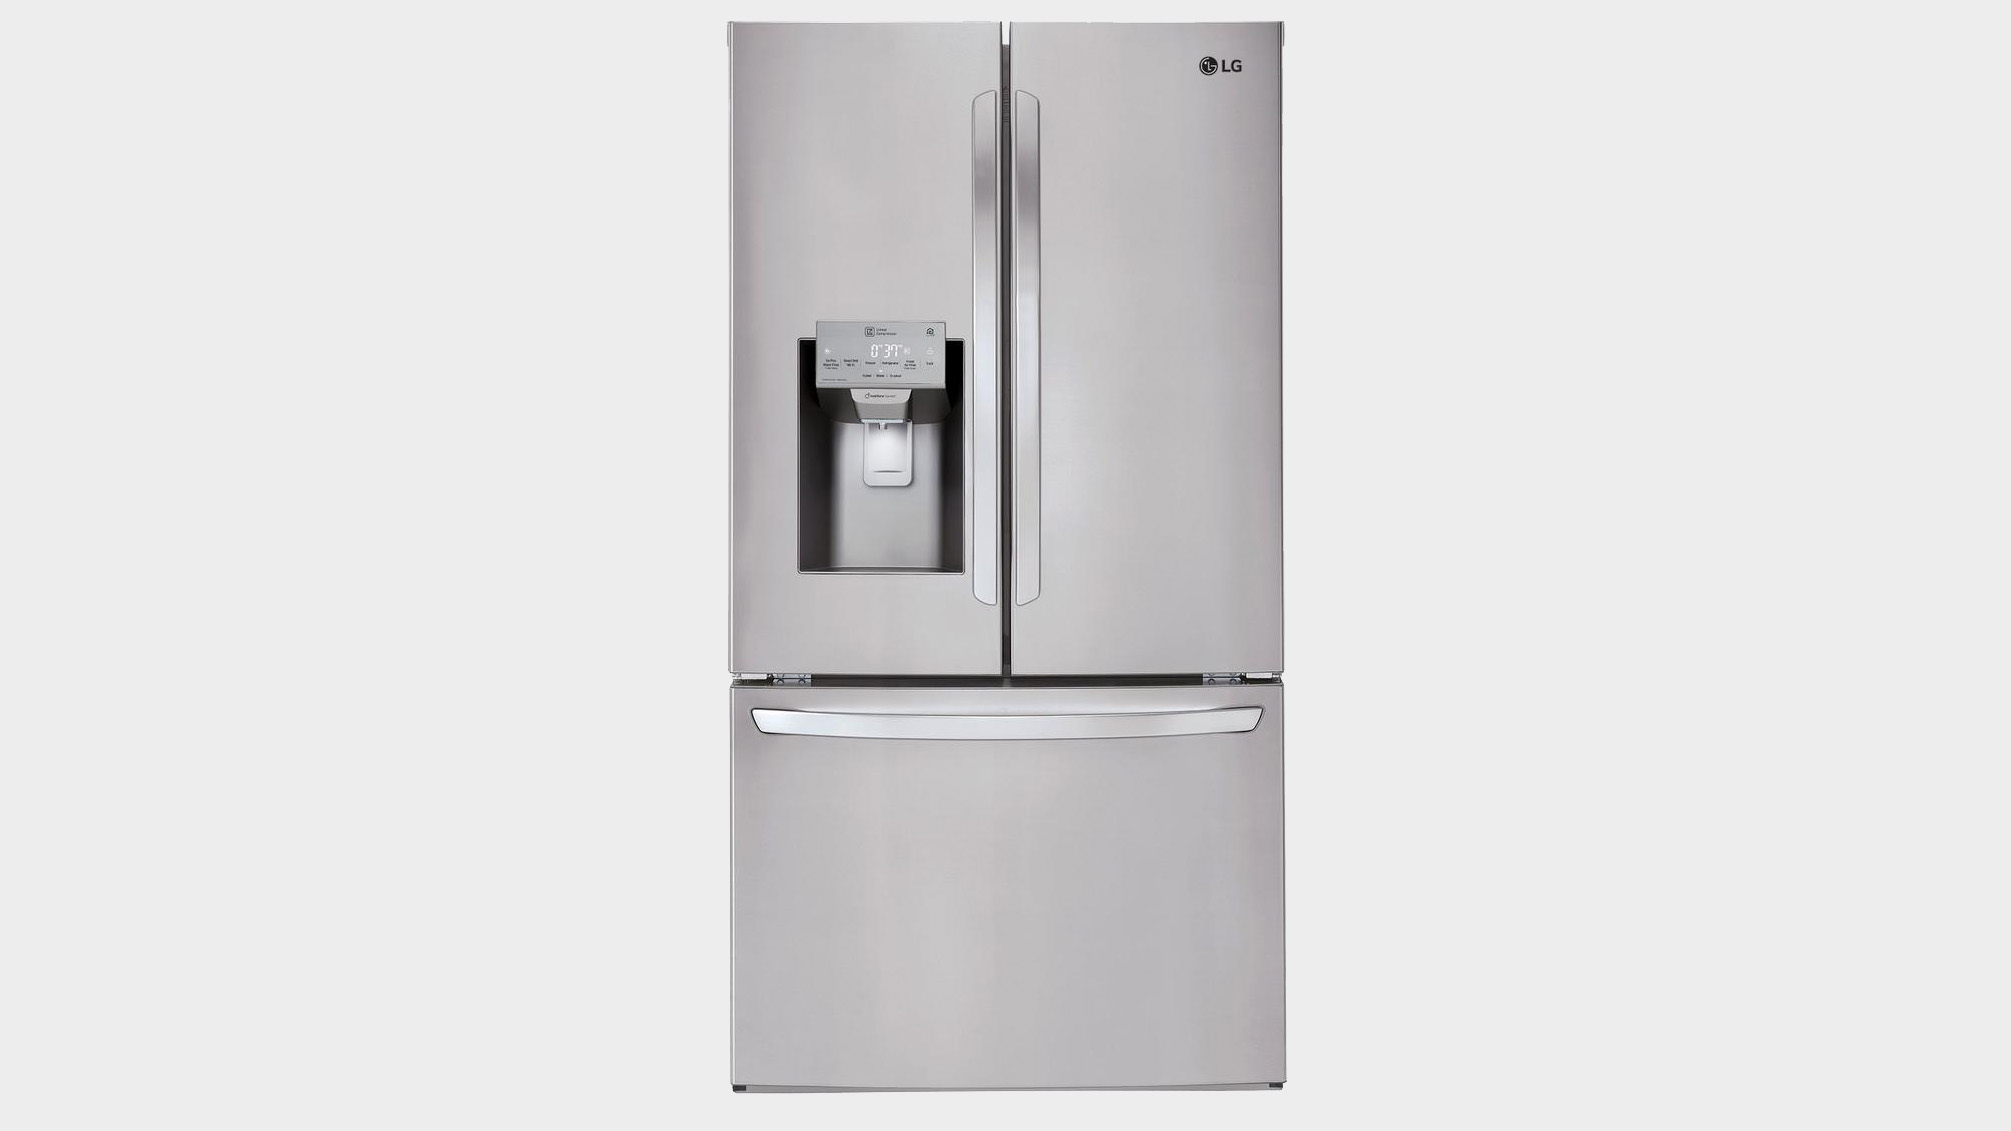 Best French Door Refrigerators 2019 - Reviews of Top Brands